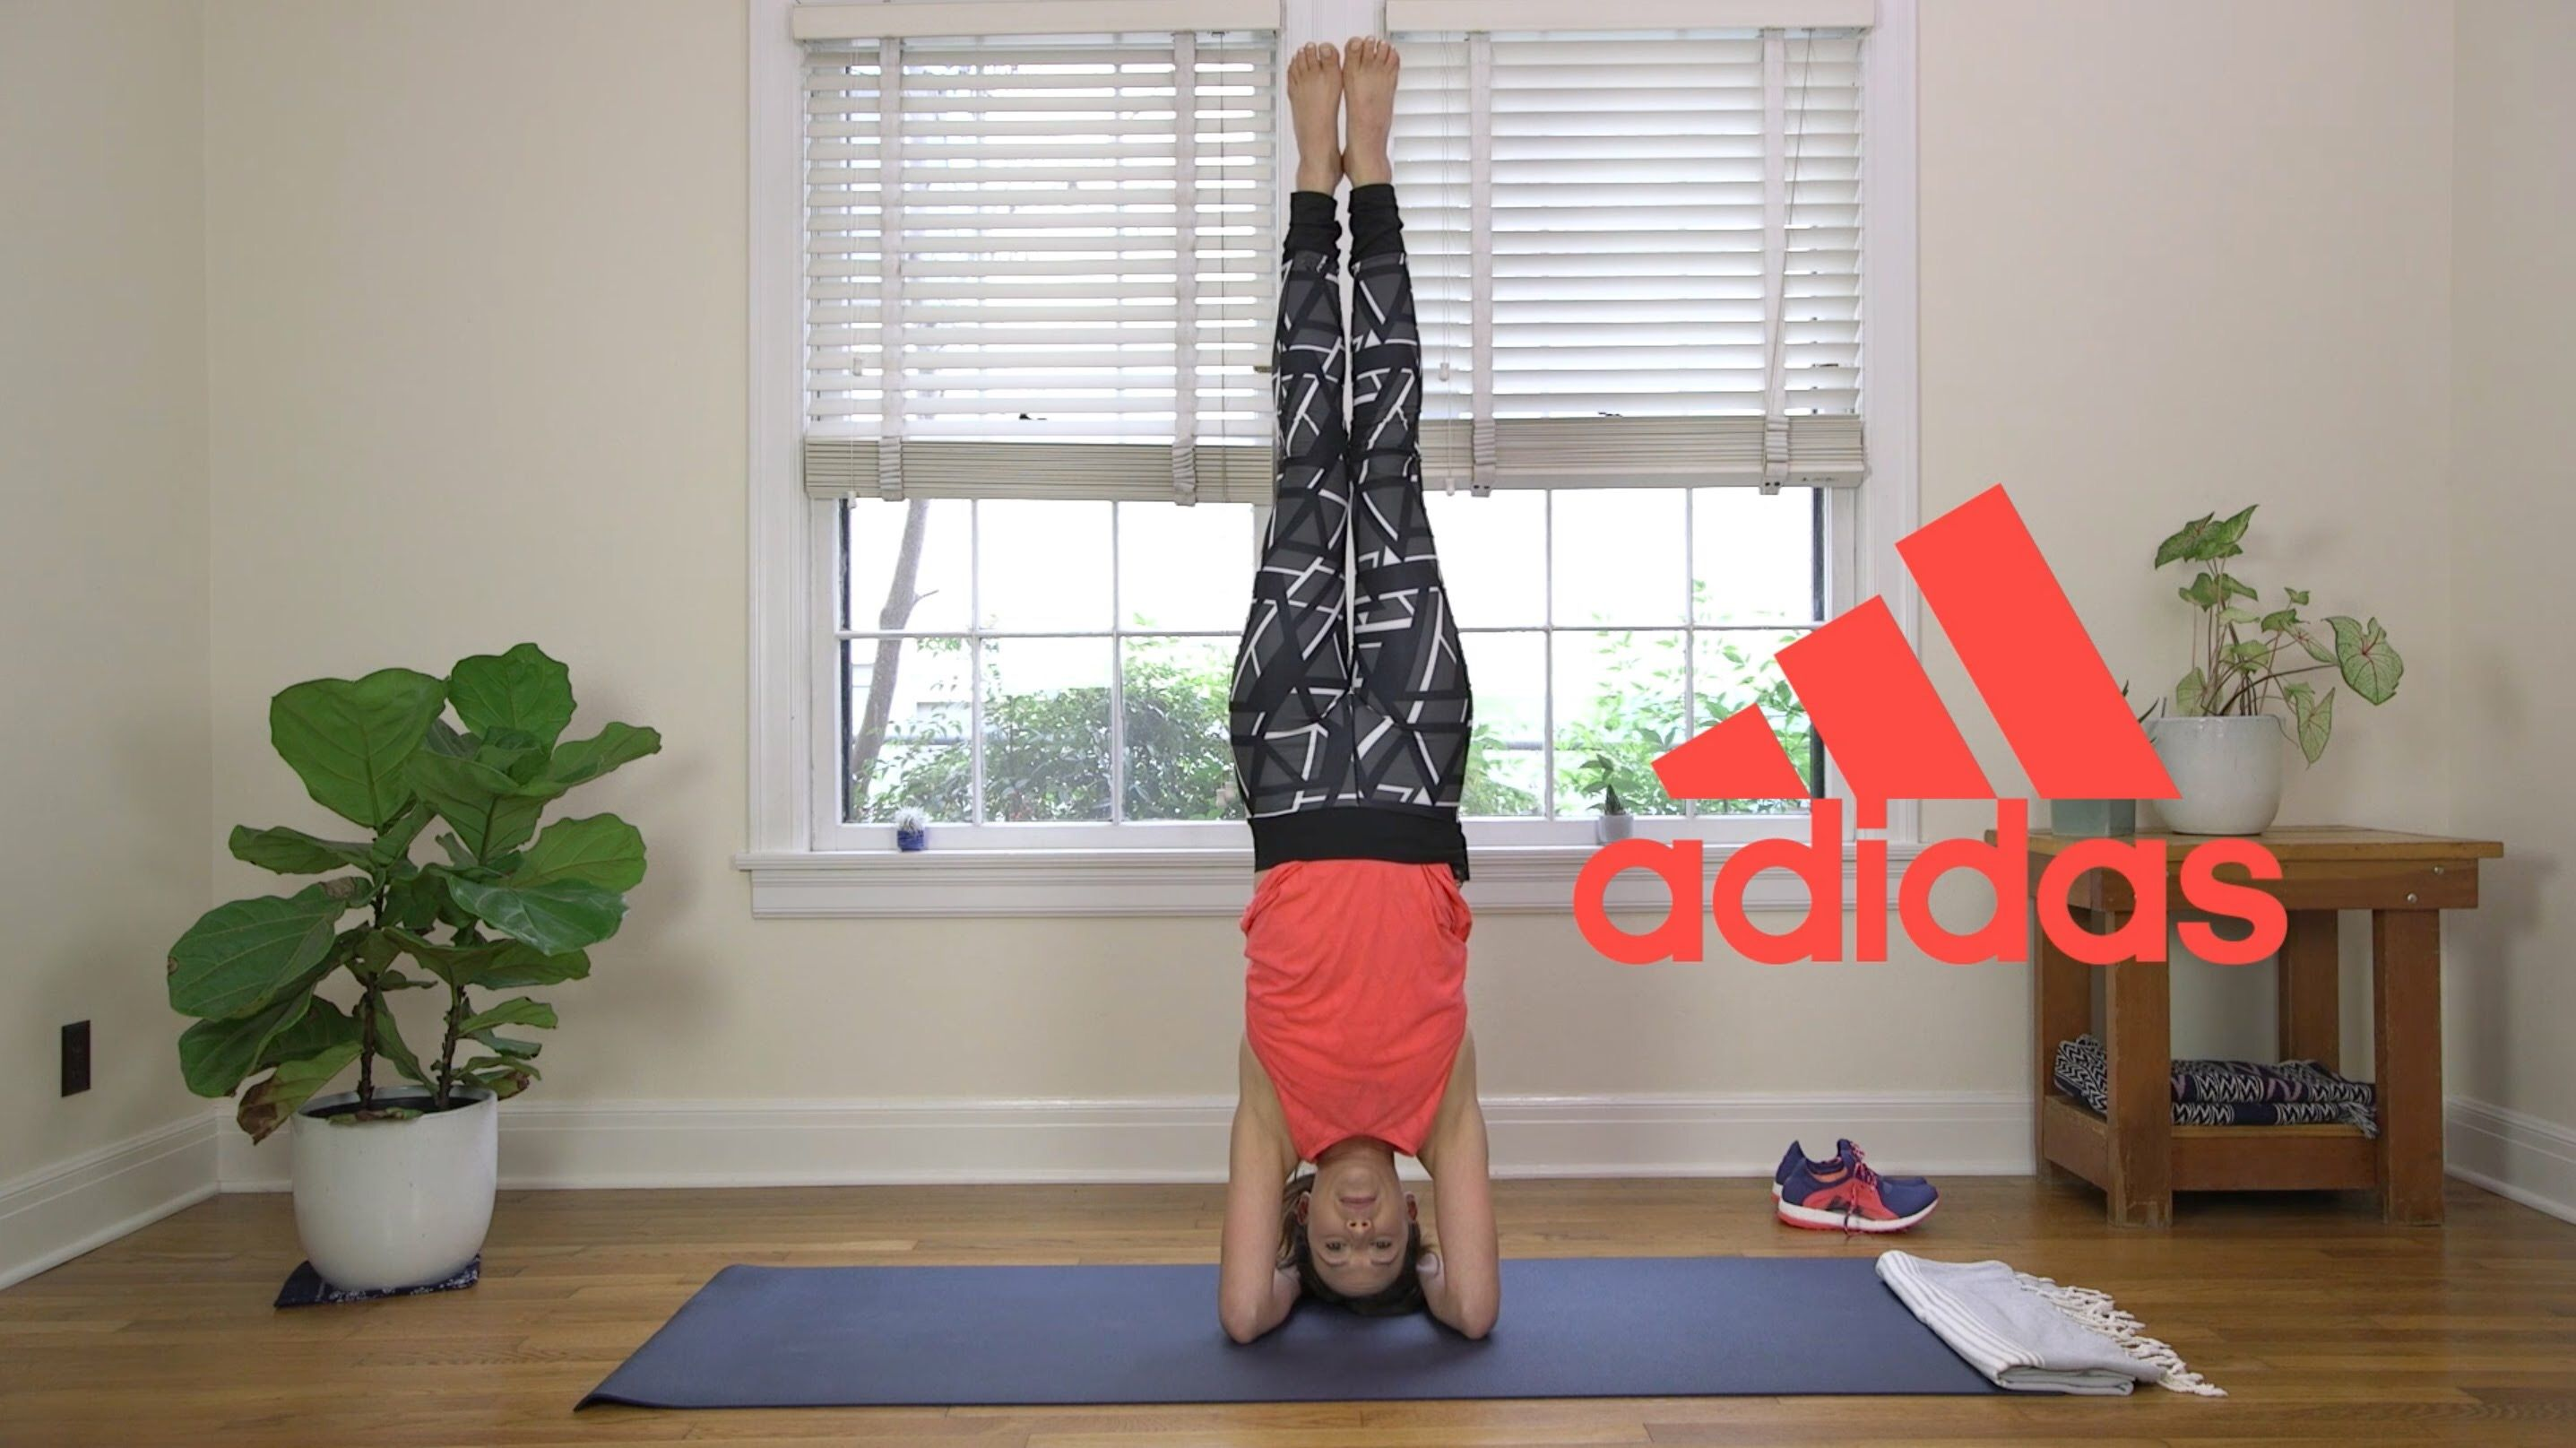 Adriene Mishler Becomes The New Face of Adidas Yoga Clothing